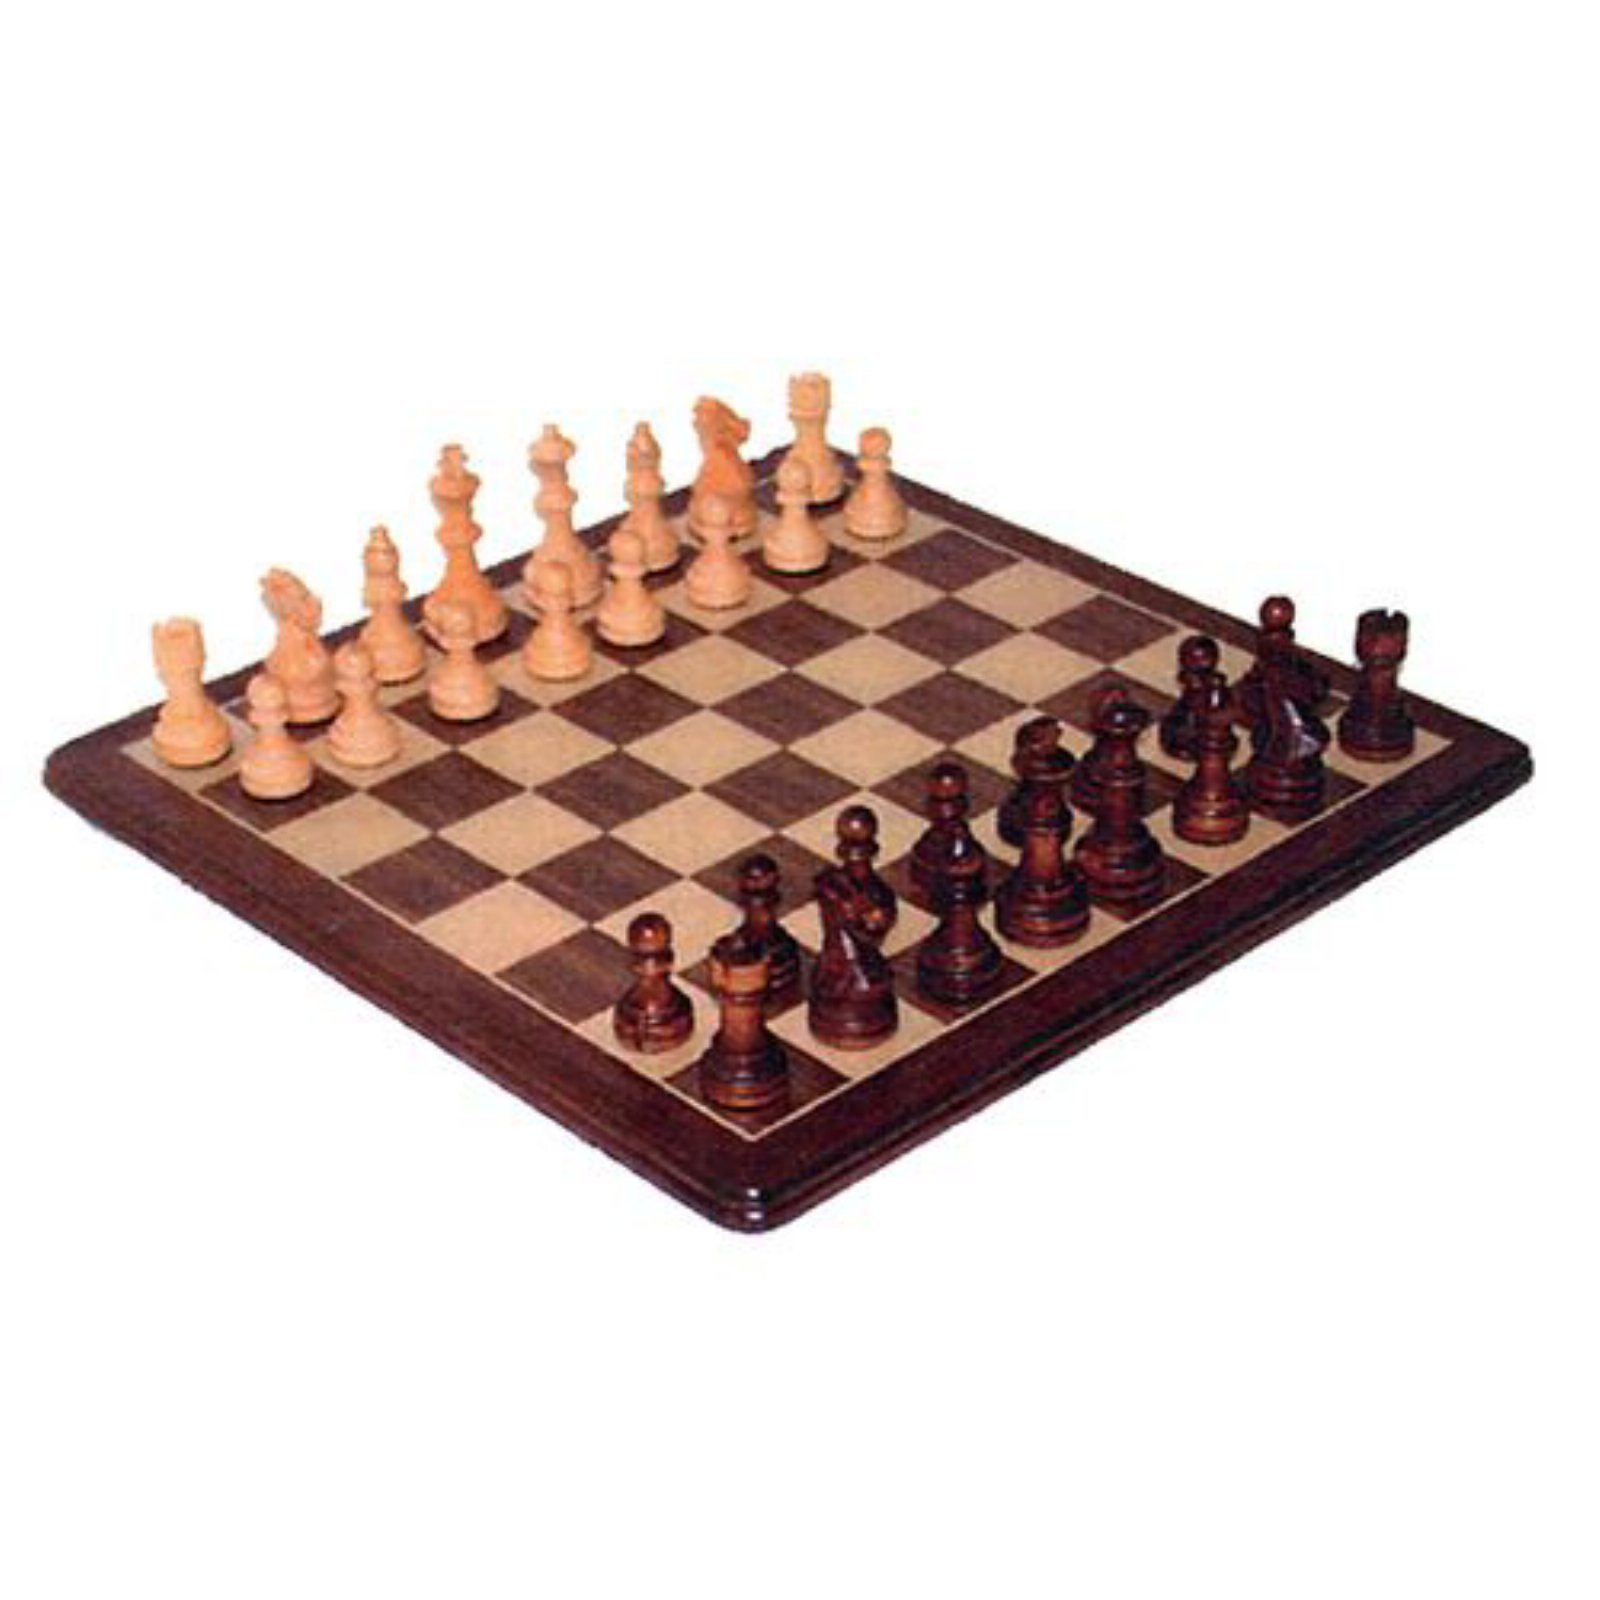 Wood Expressions Polished Walnut Staunton Chess Set